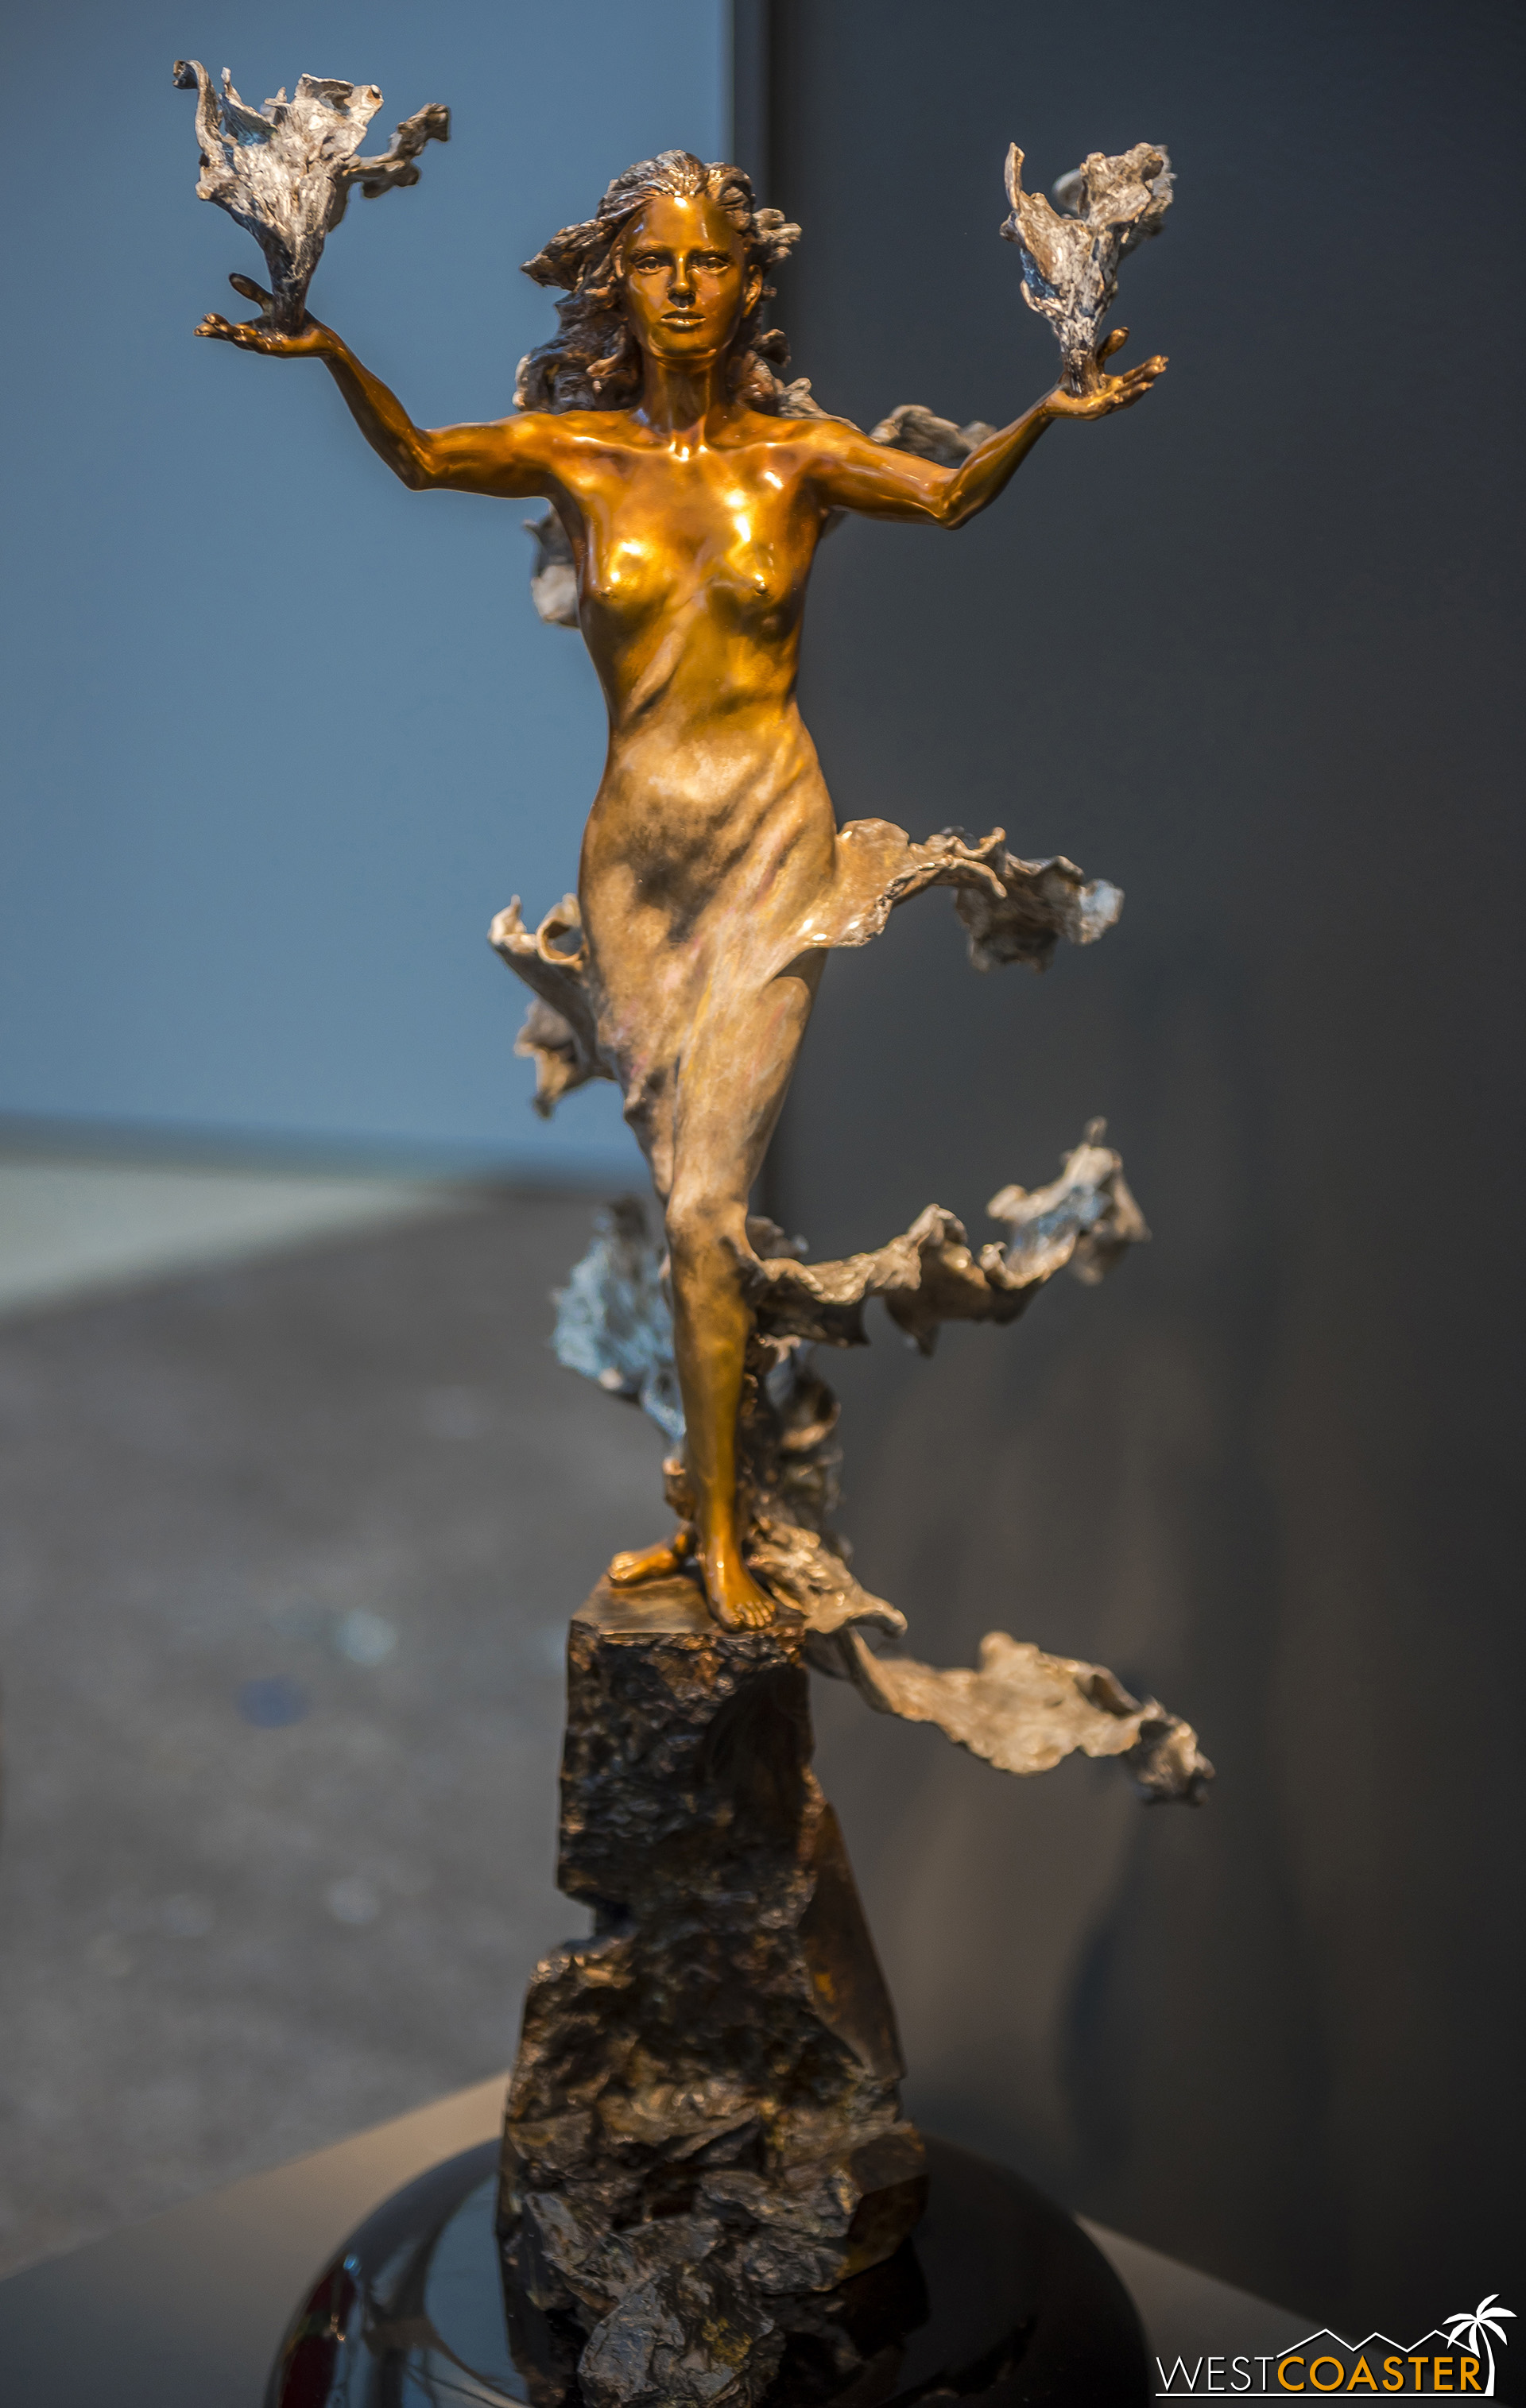 The smoothness and sleek forms of the human body are juxtaposed by the craggy, rocky roughness of the base, which is also made out of bronze despite looking much different!